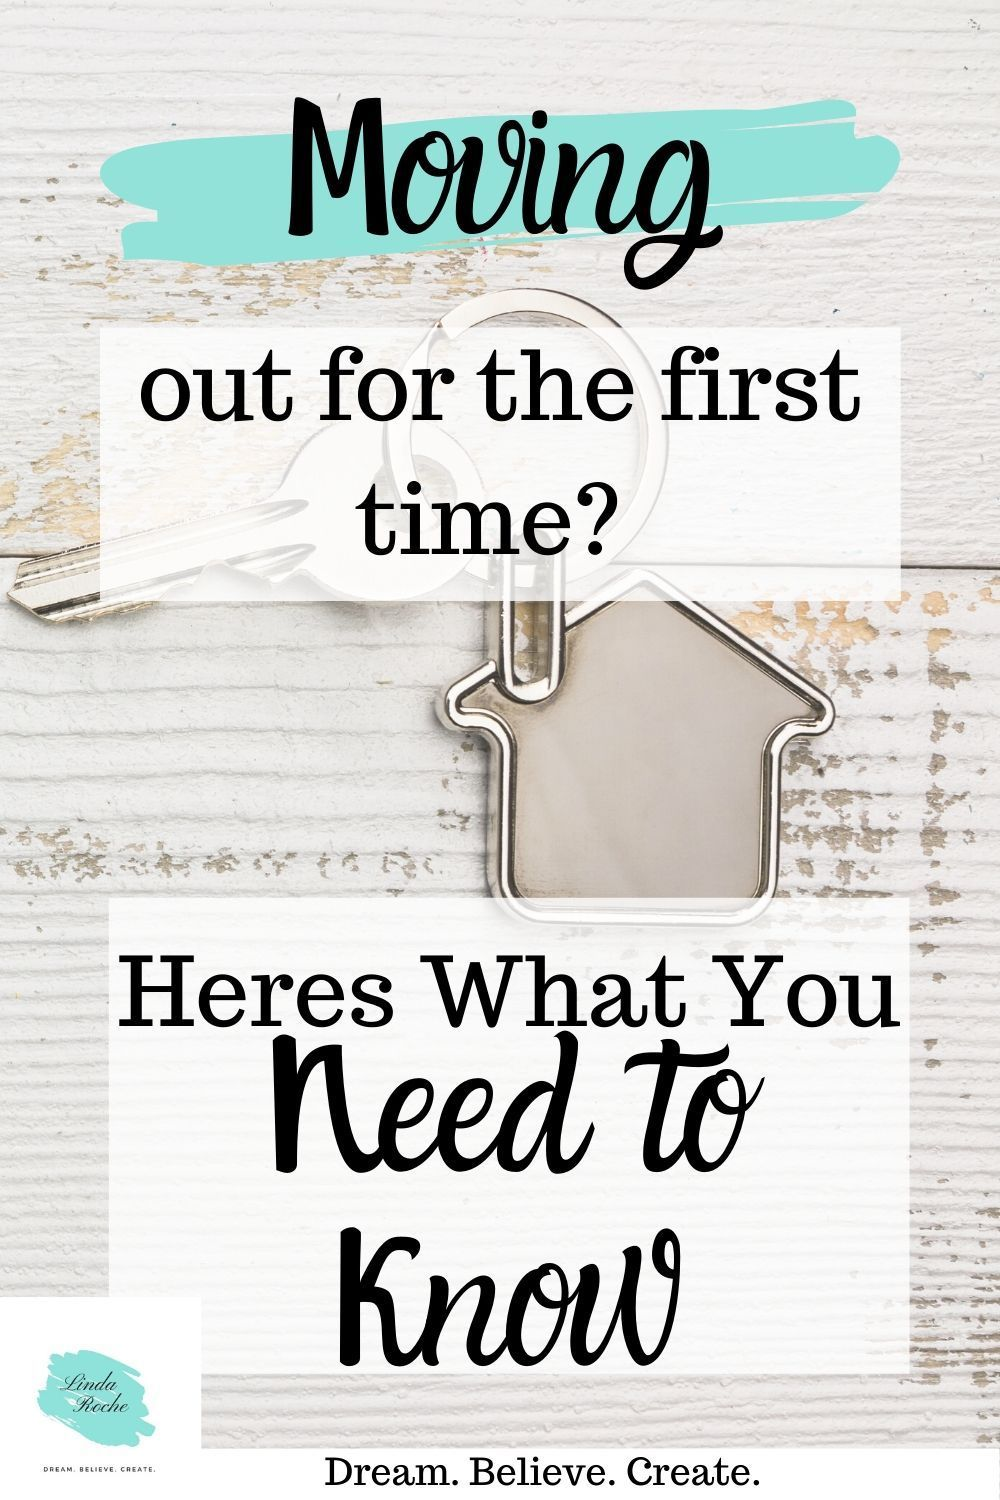 Moving out for the first time? Here's what you need to know || Are you moving out for the first time? Do you need tips, tricks and hacks. Here is everything you need to know! In this post I share everything you need to know in order to move out on your own for the first time. #movingoutforthefirsttime #movingout #movingtips #movingideas #movingchecklist